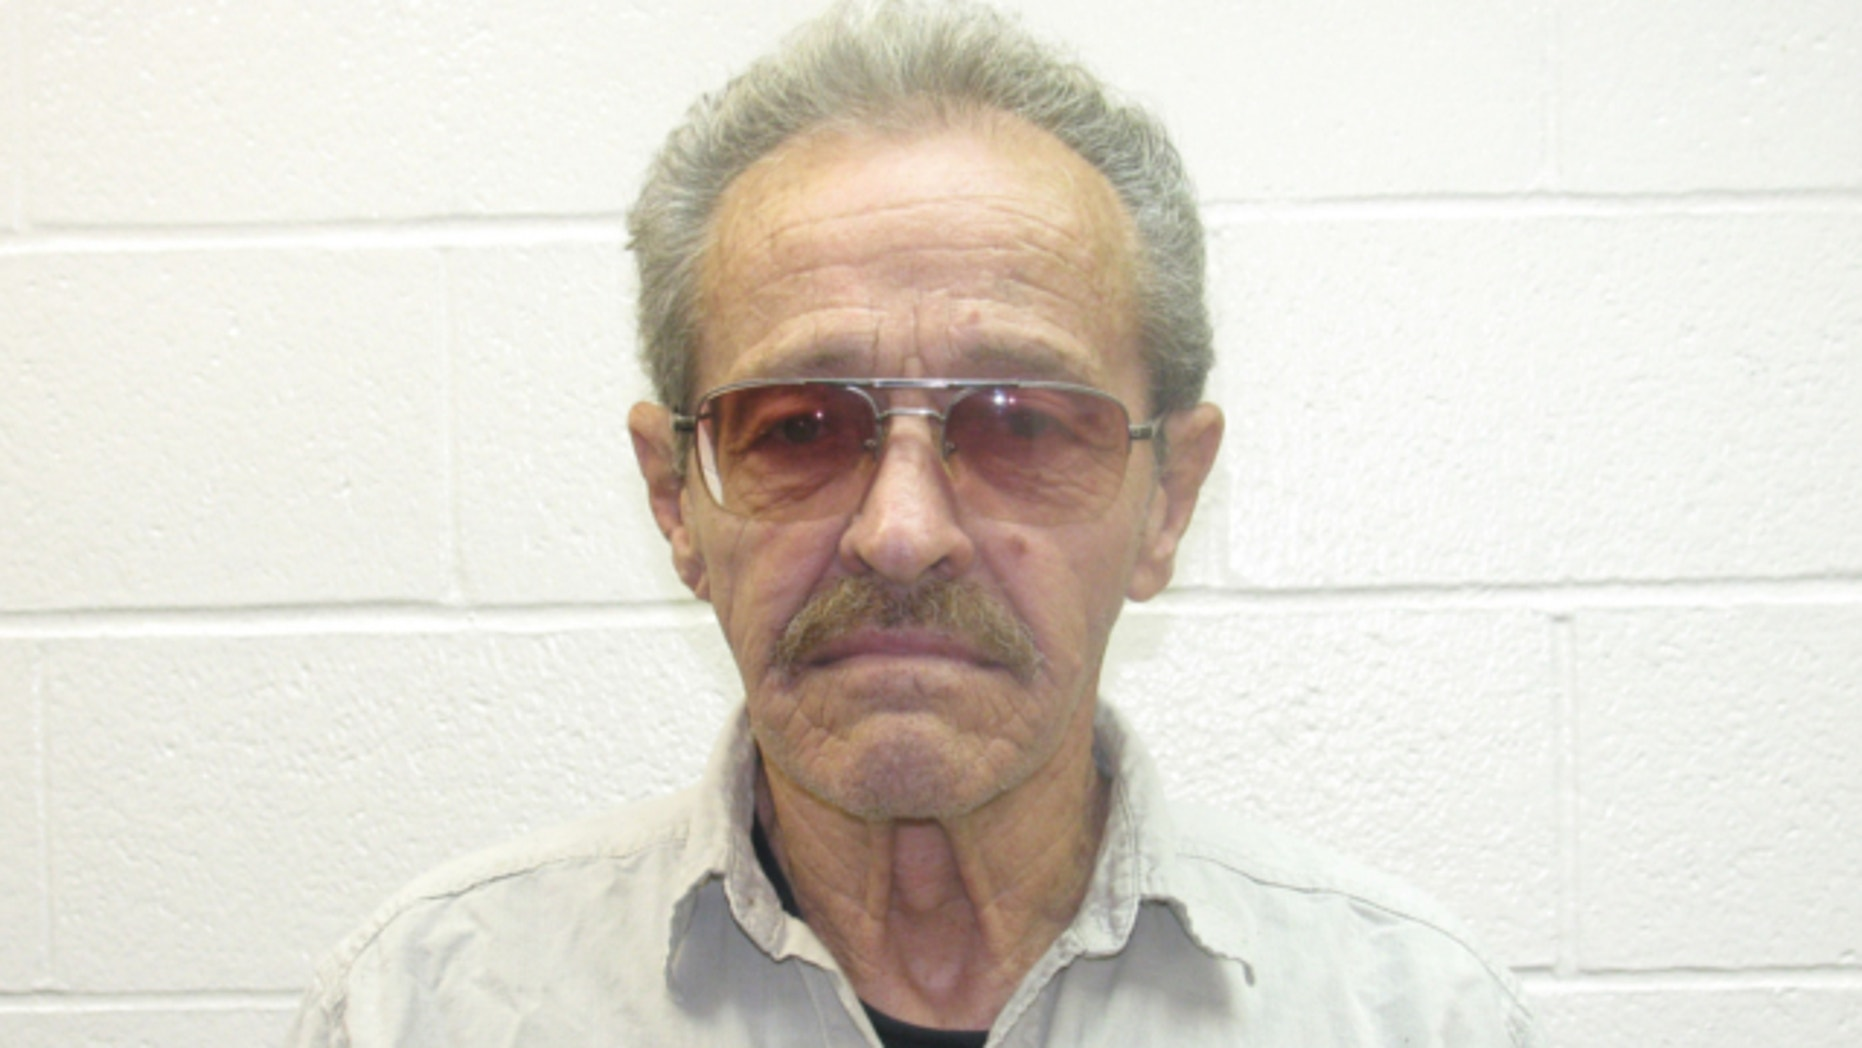 UNDATED: The Garland County Sheriff's Office says 69-year-old Michael Ray Morrow was arrested without incident Monday in Jessieville, Ark.